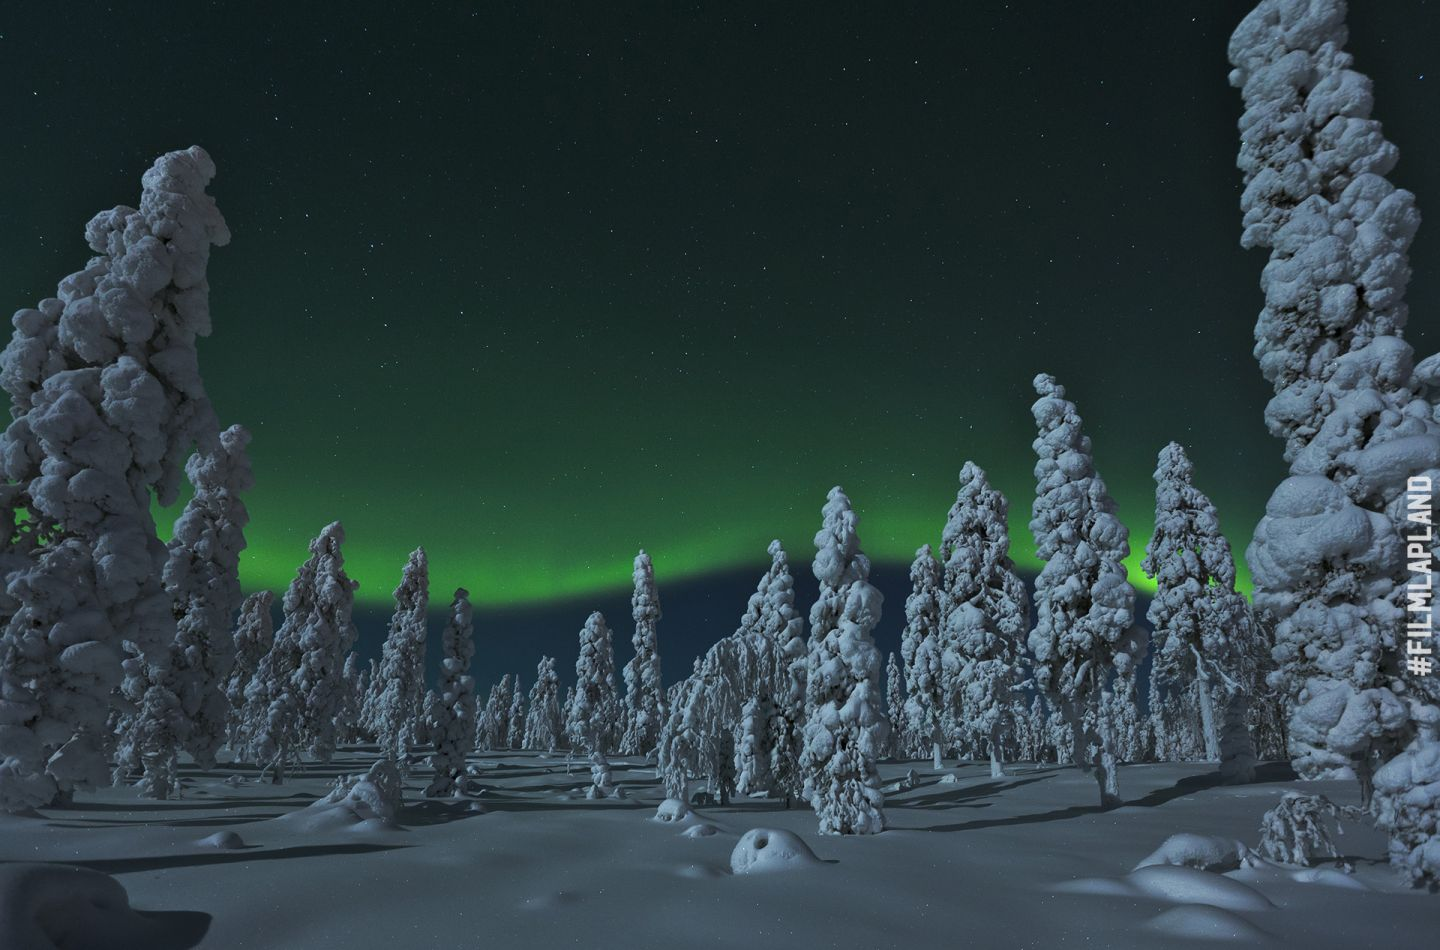 Northern Lights over snow-capped trees in Rovaniemi, Finland